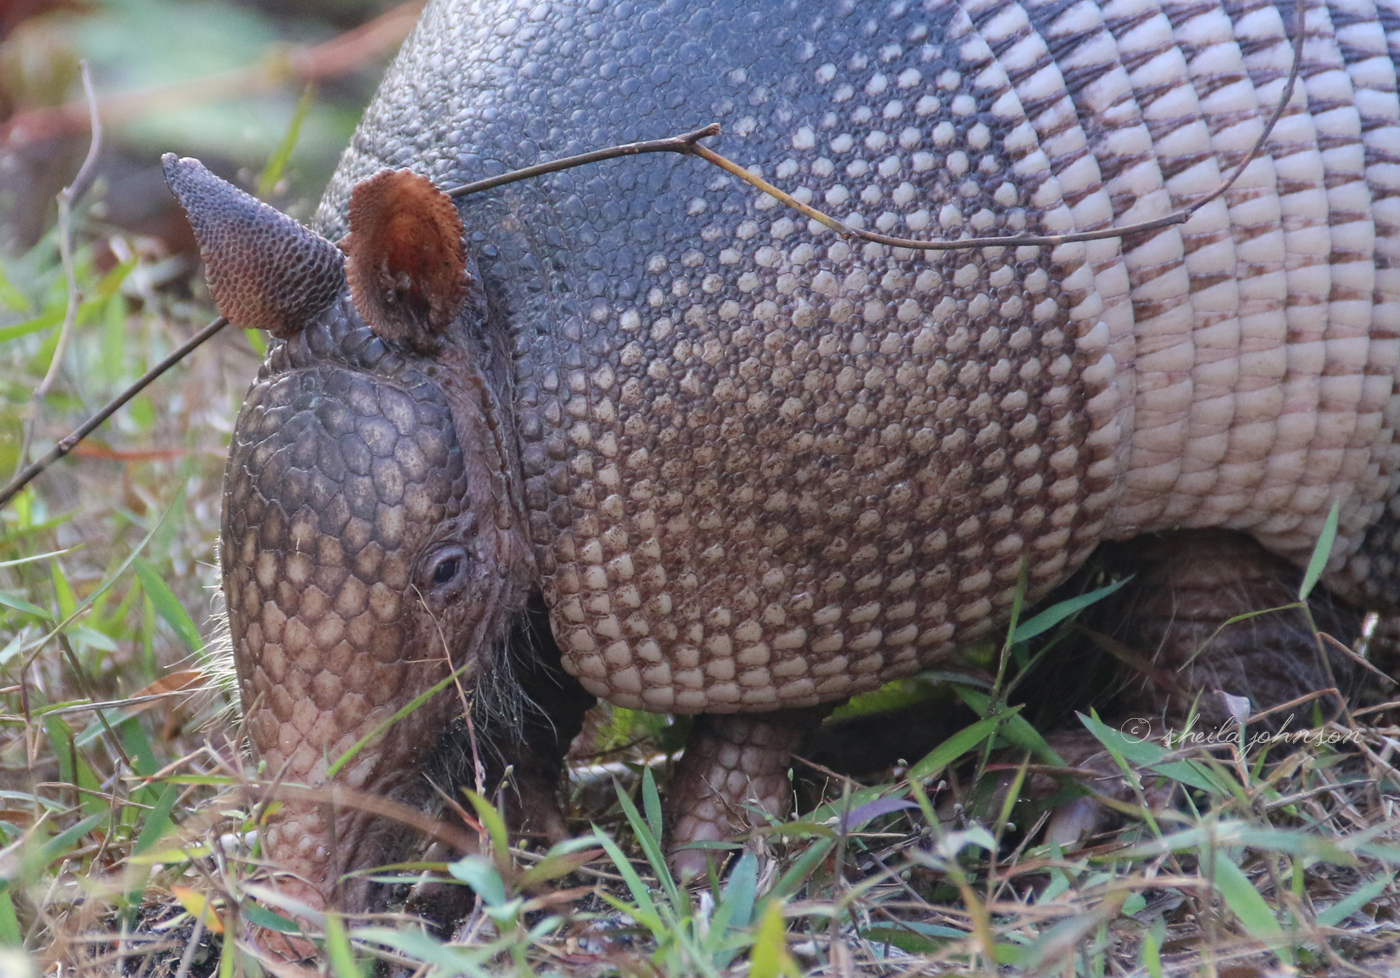 Ever wondered why all of the neighborhood Armadillos look alike? It's called polyembryony.